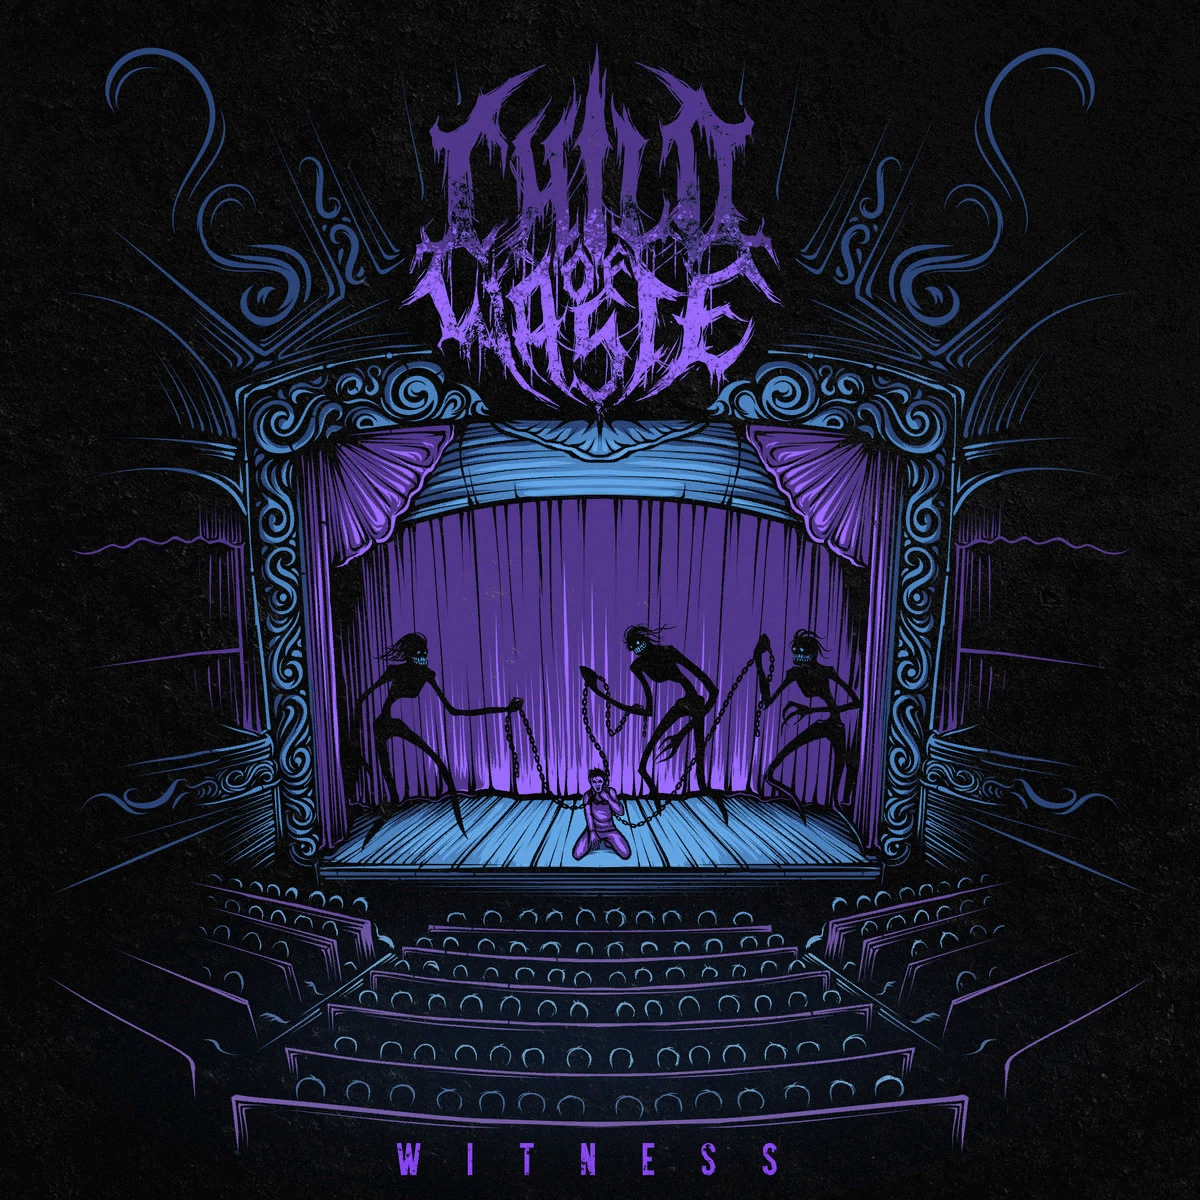 Child of Waste - Witness [Single] (2019)